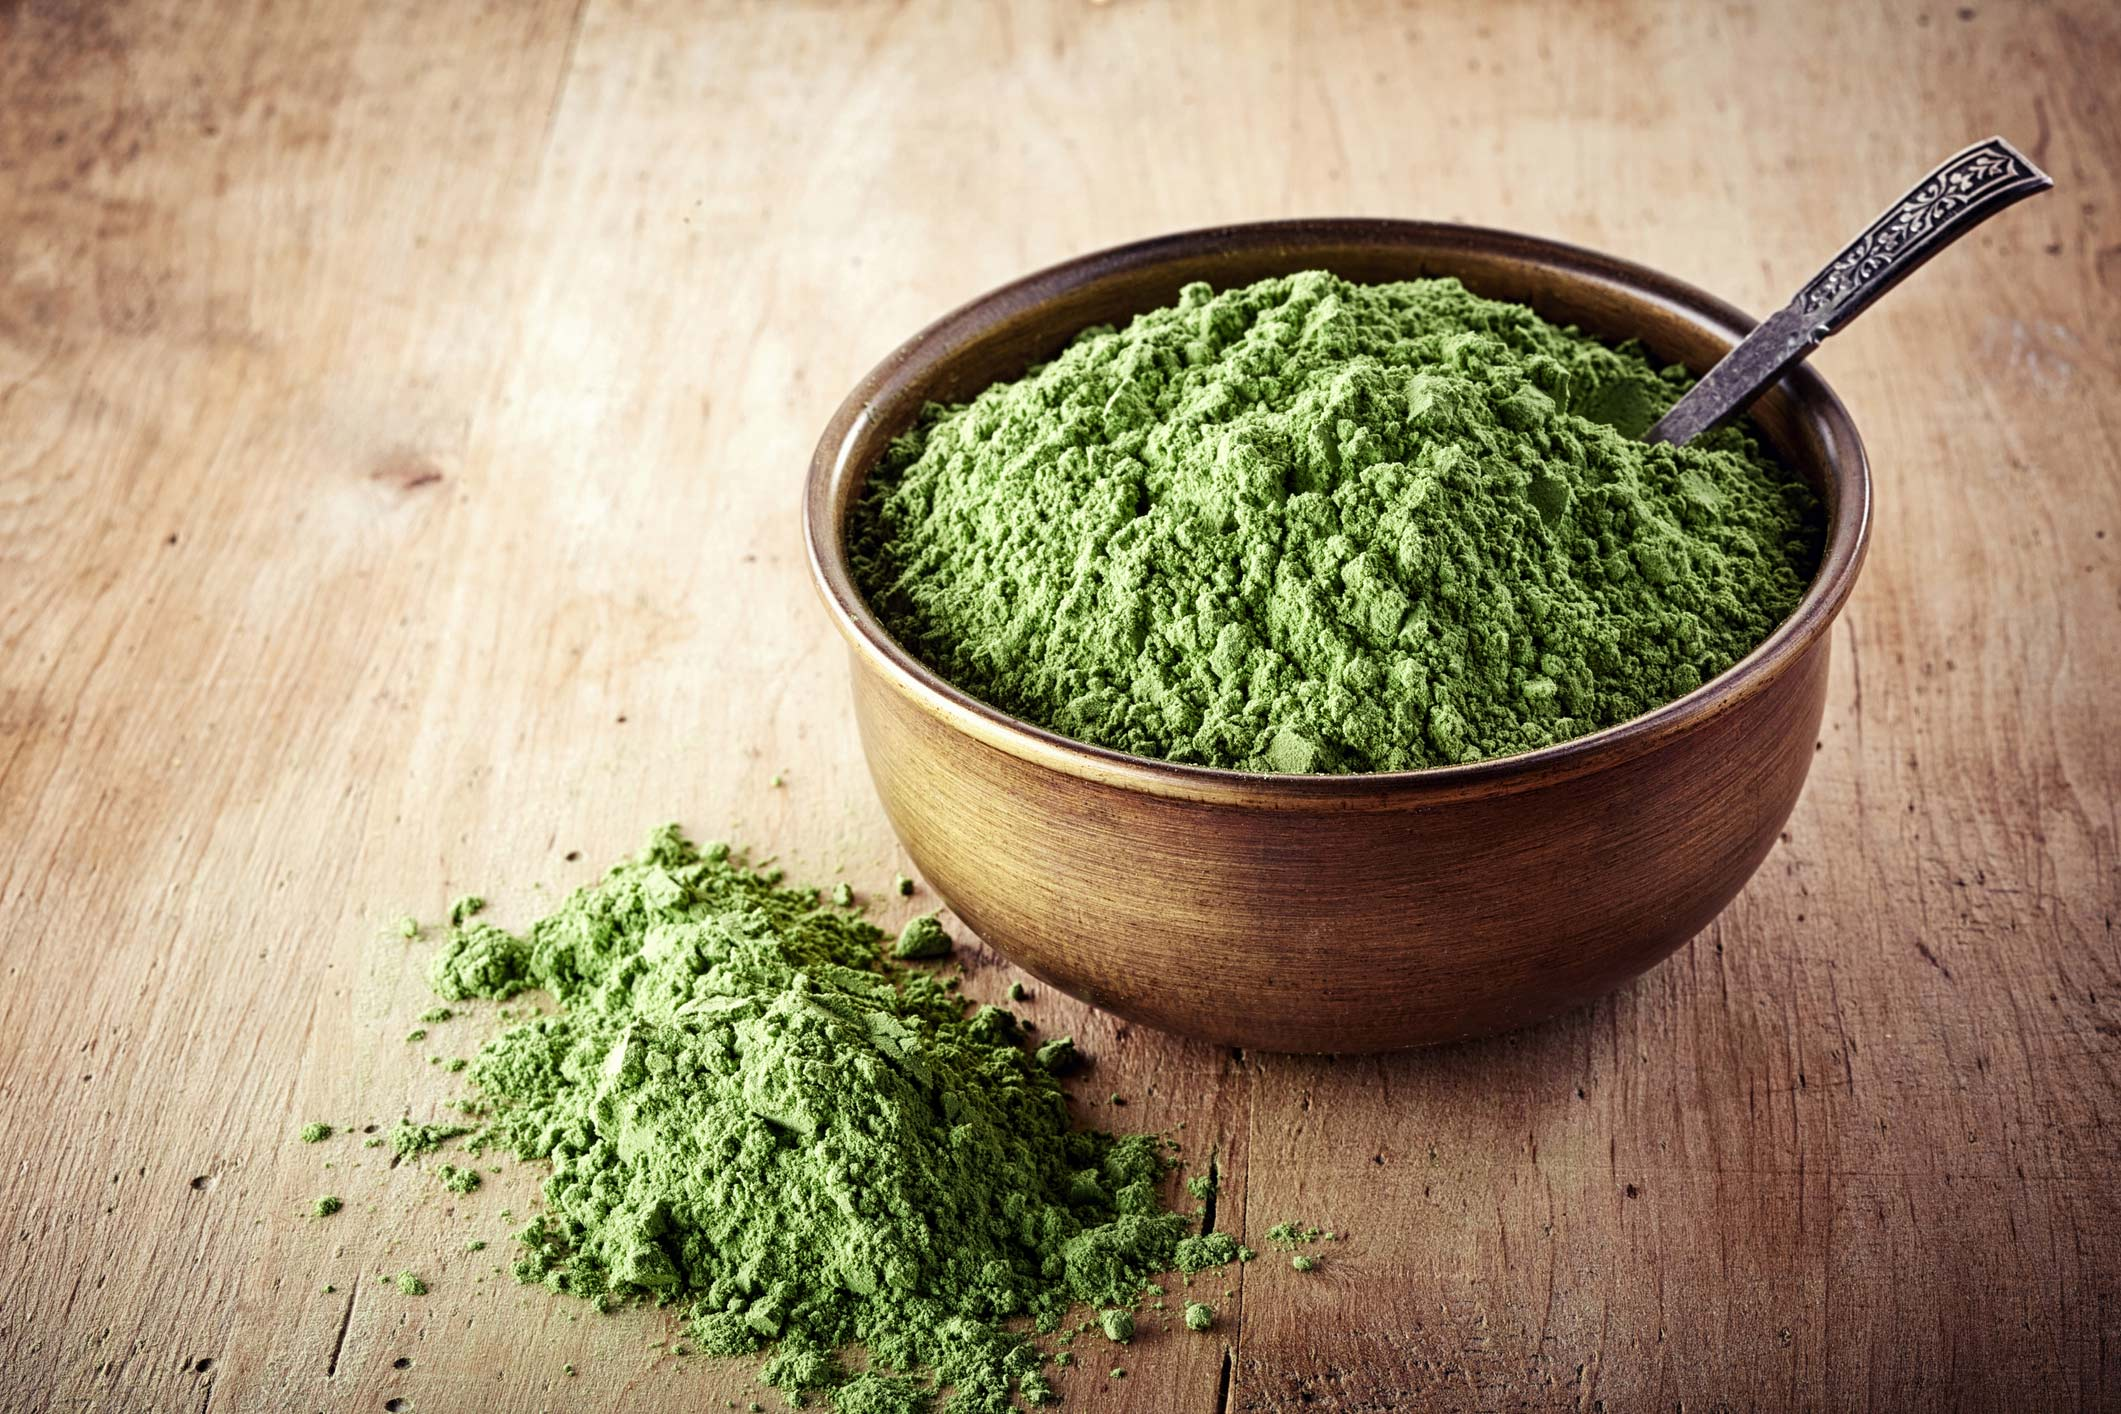 Top detoxifying foods: Chlorella